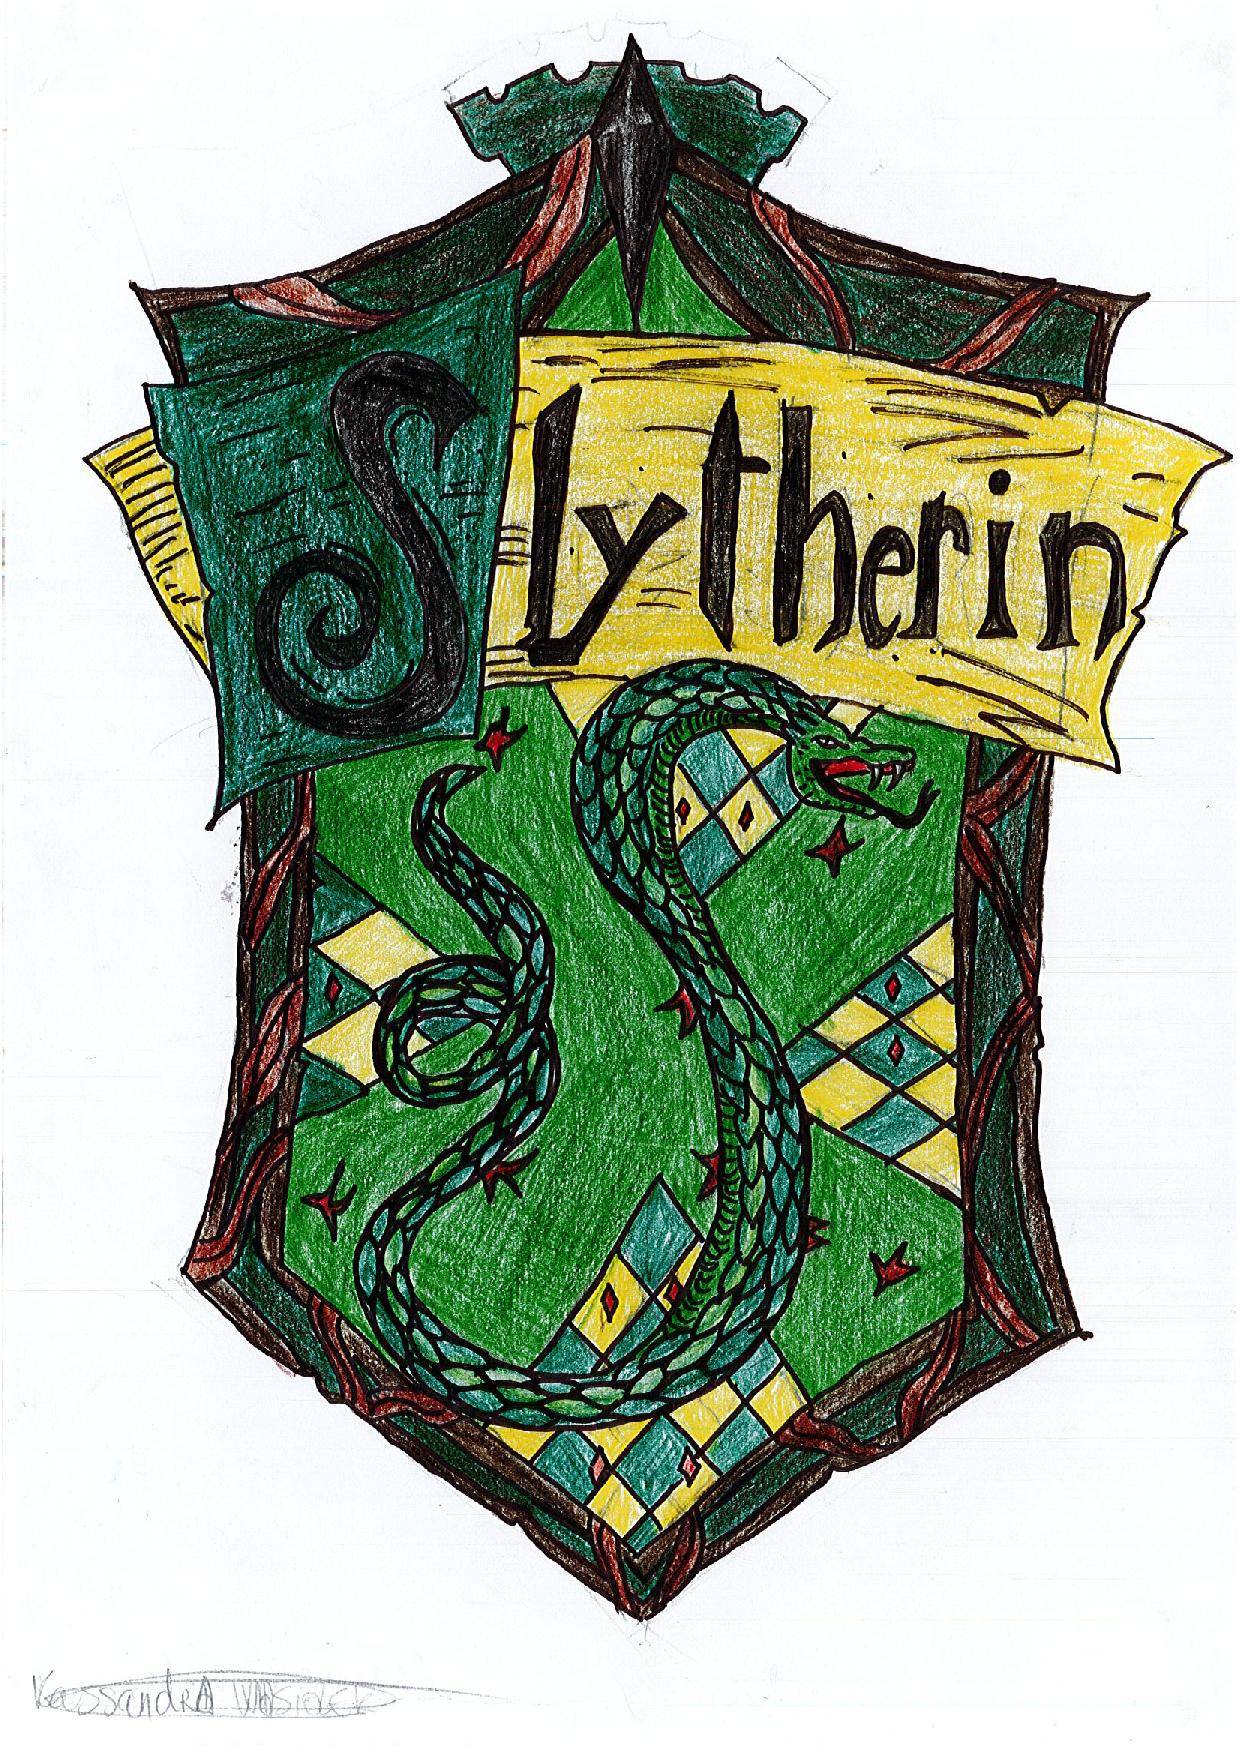 Blason serpentard harry potter par kassandra info liziniat - Harry potter blason ...